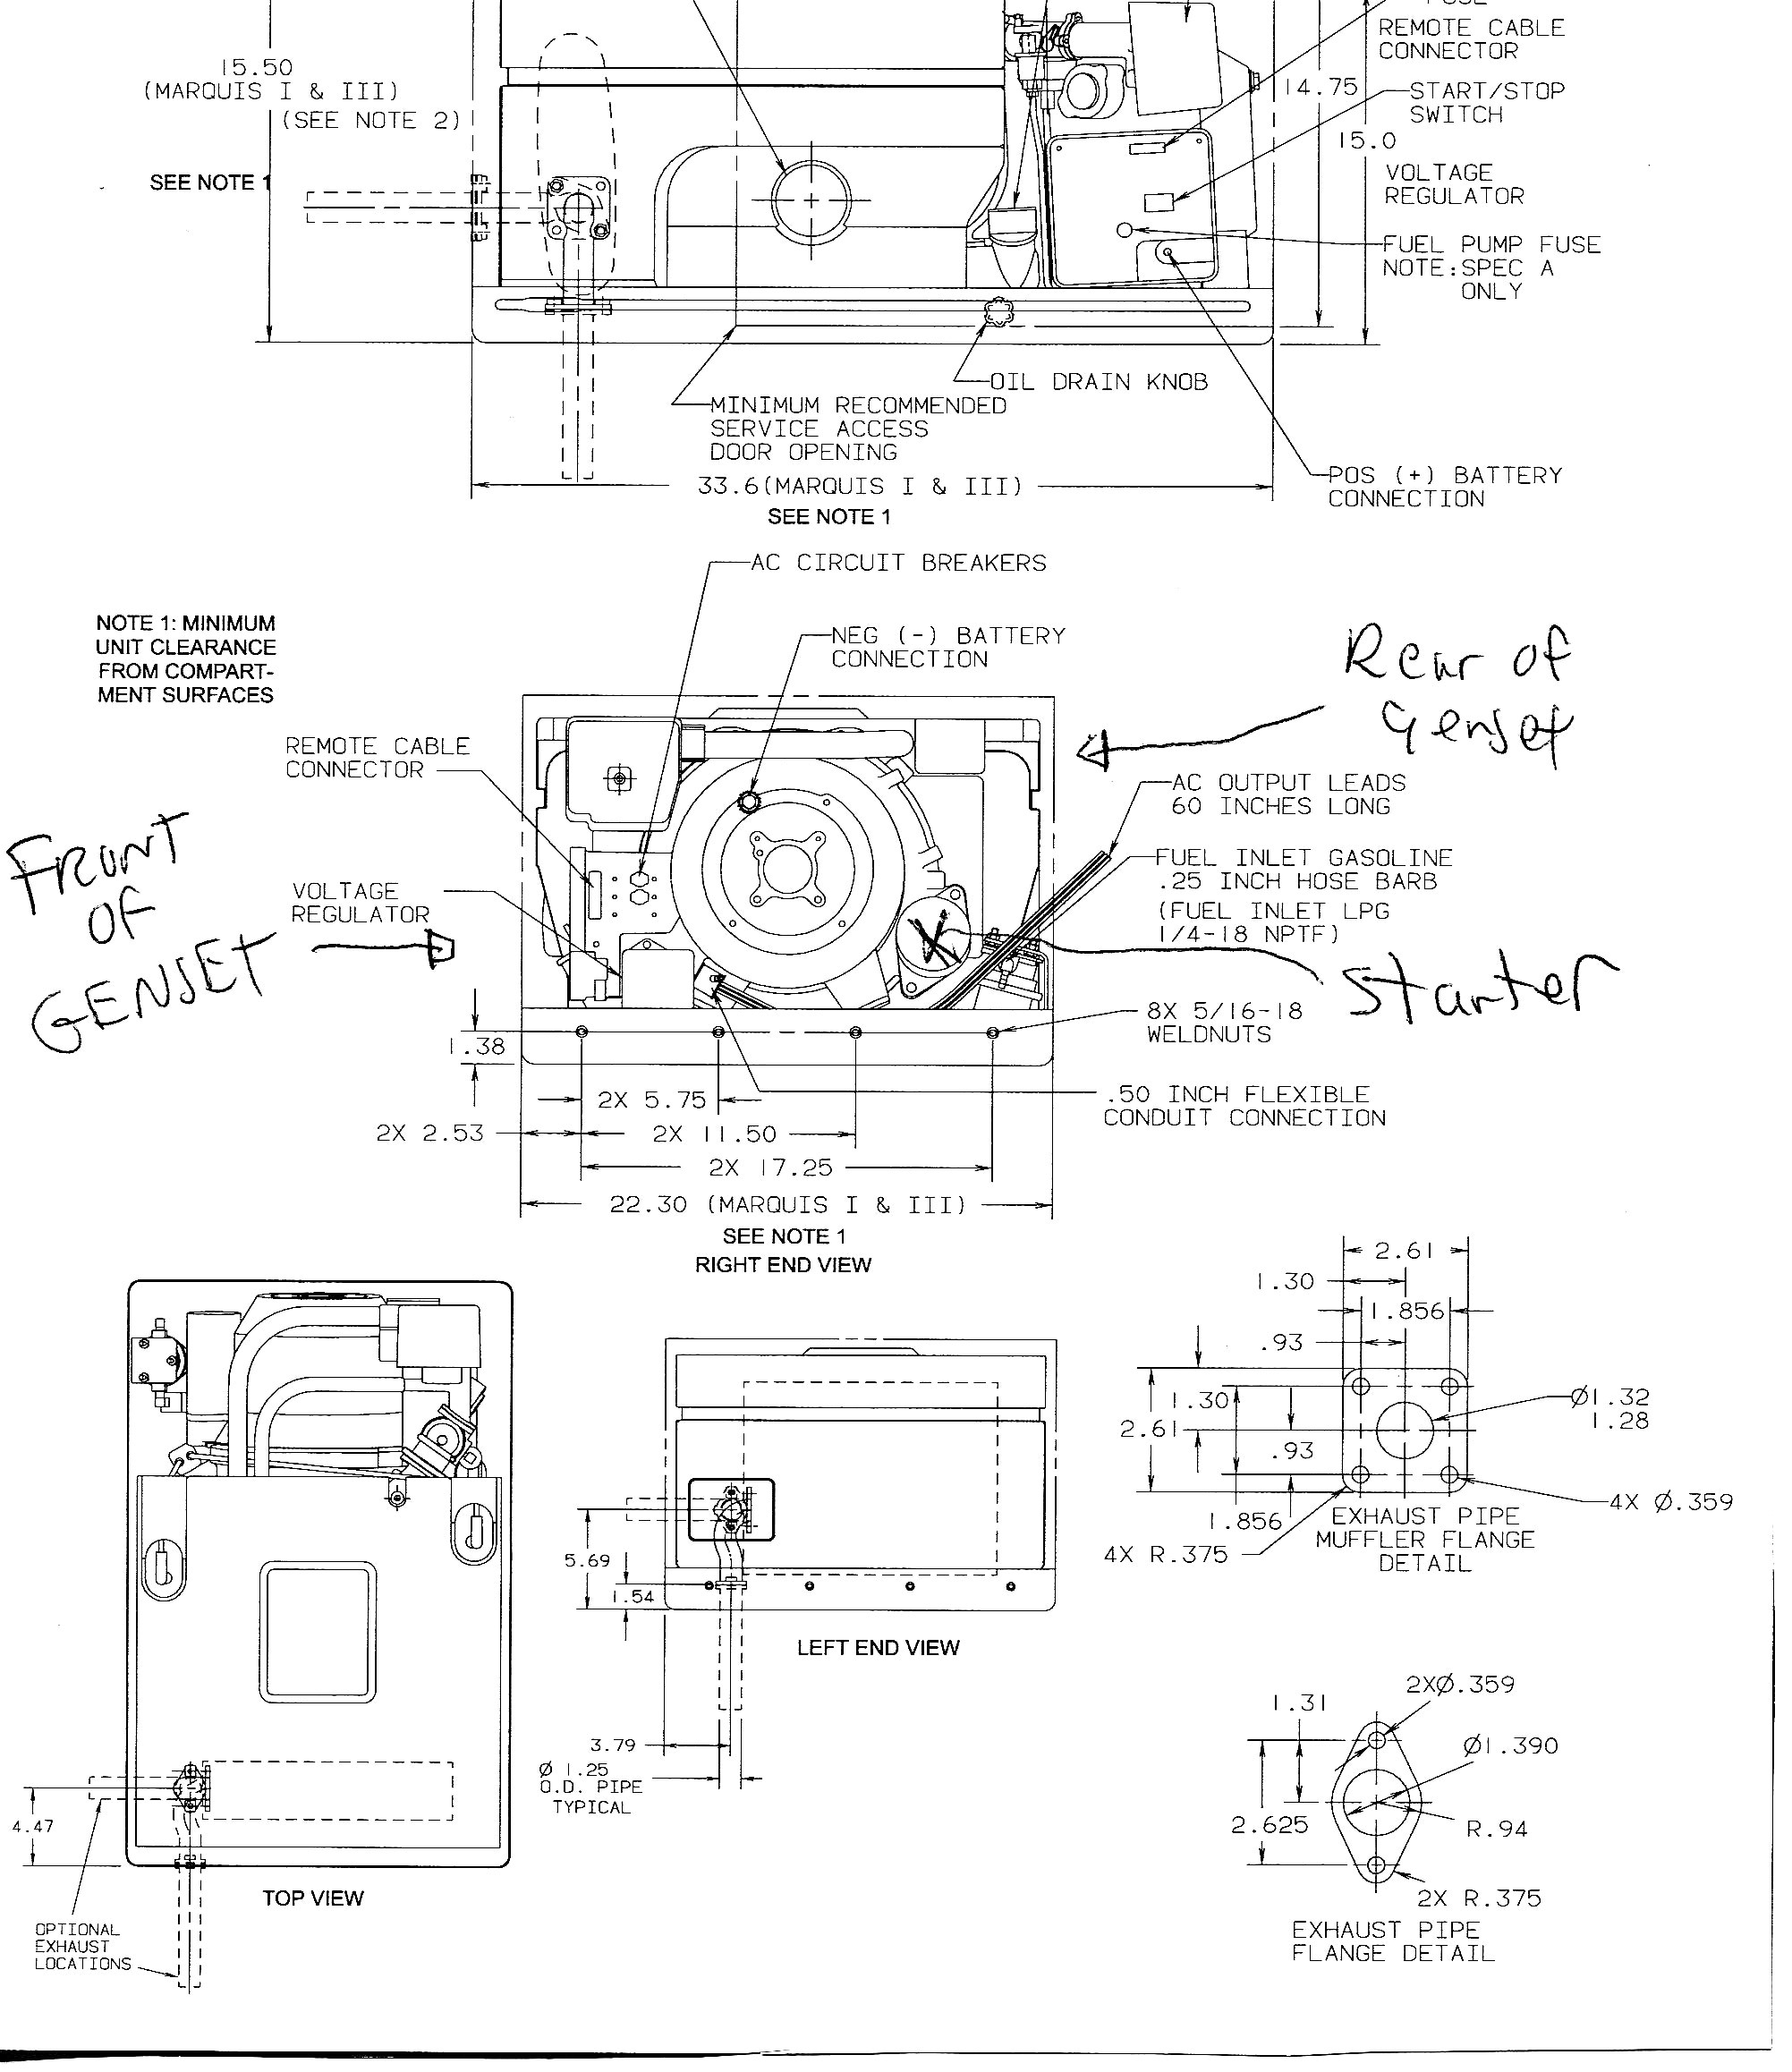 Onan Generator Remote Start Switch Wiring Diagram Wiring